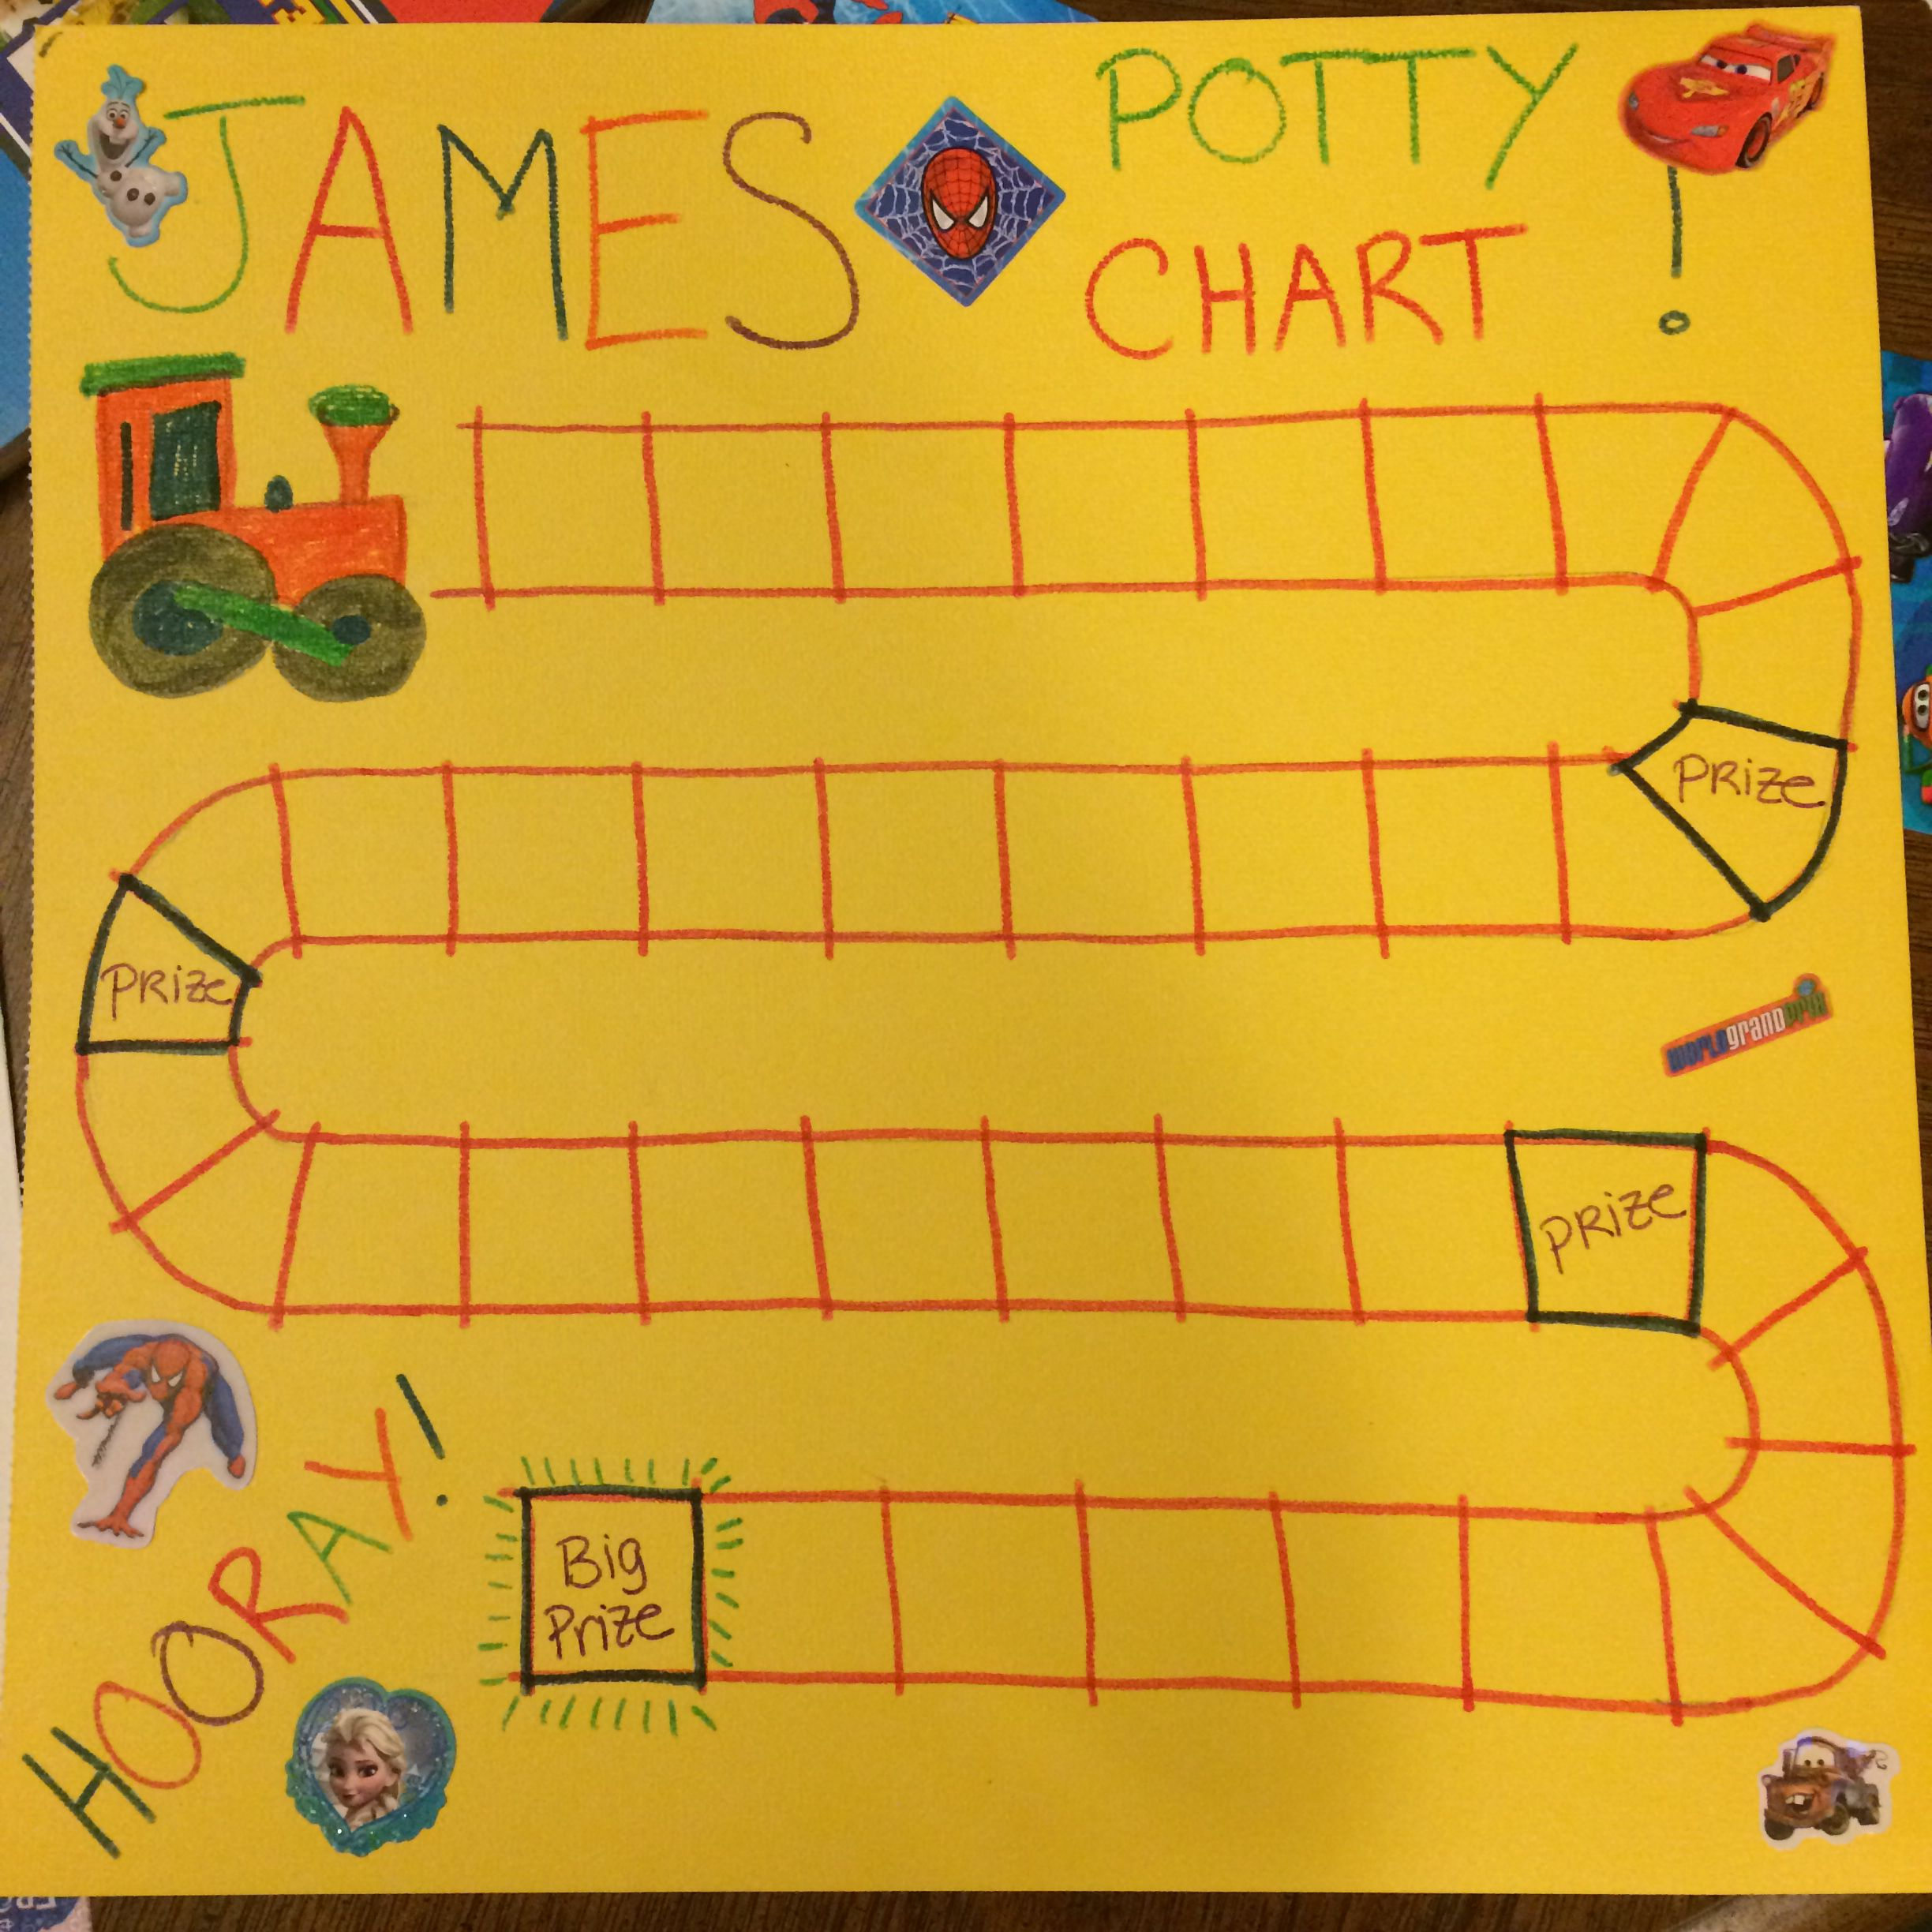 potty training chart  he gets 1 sticker for each pee  and